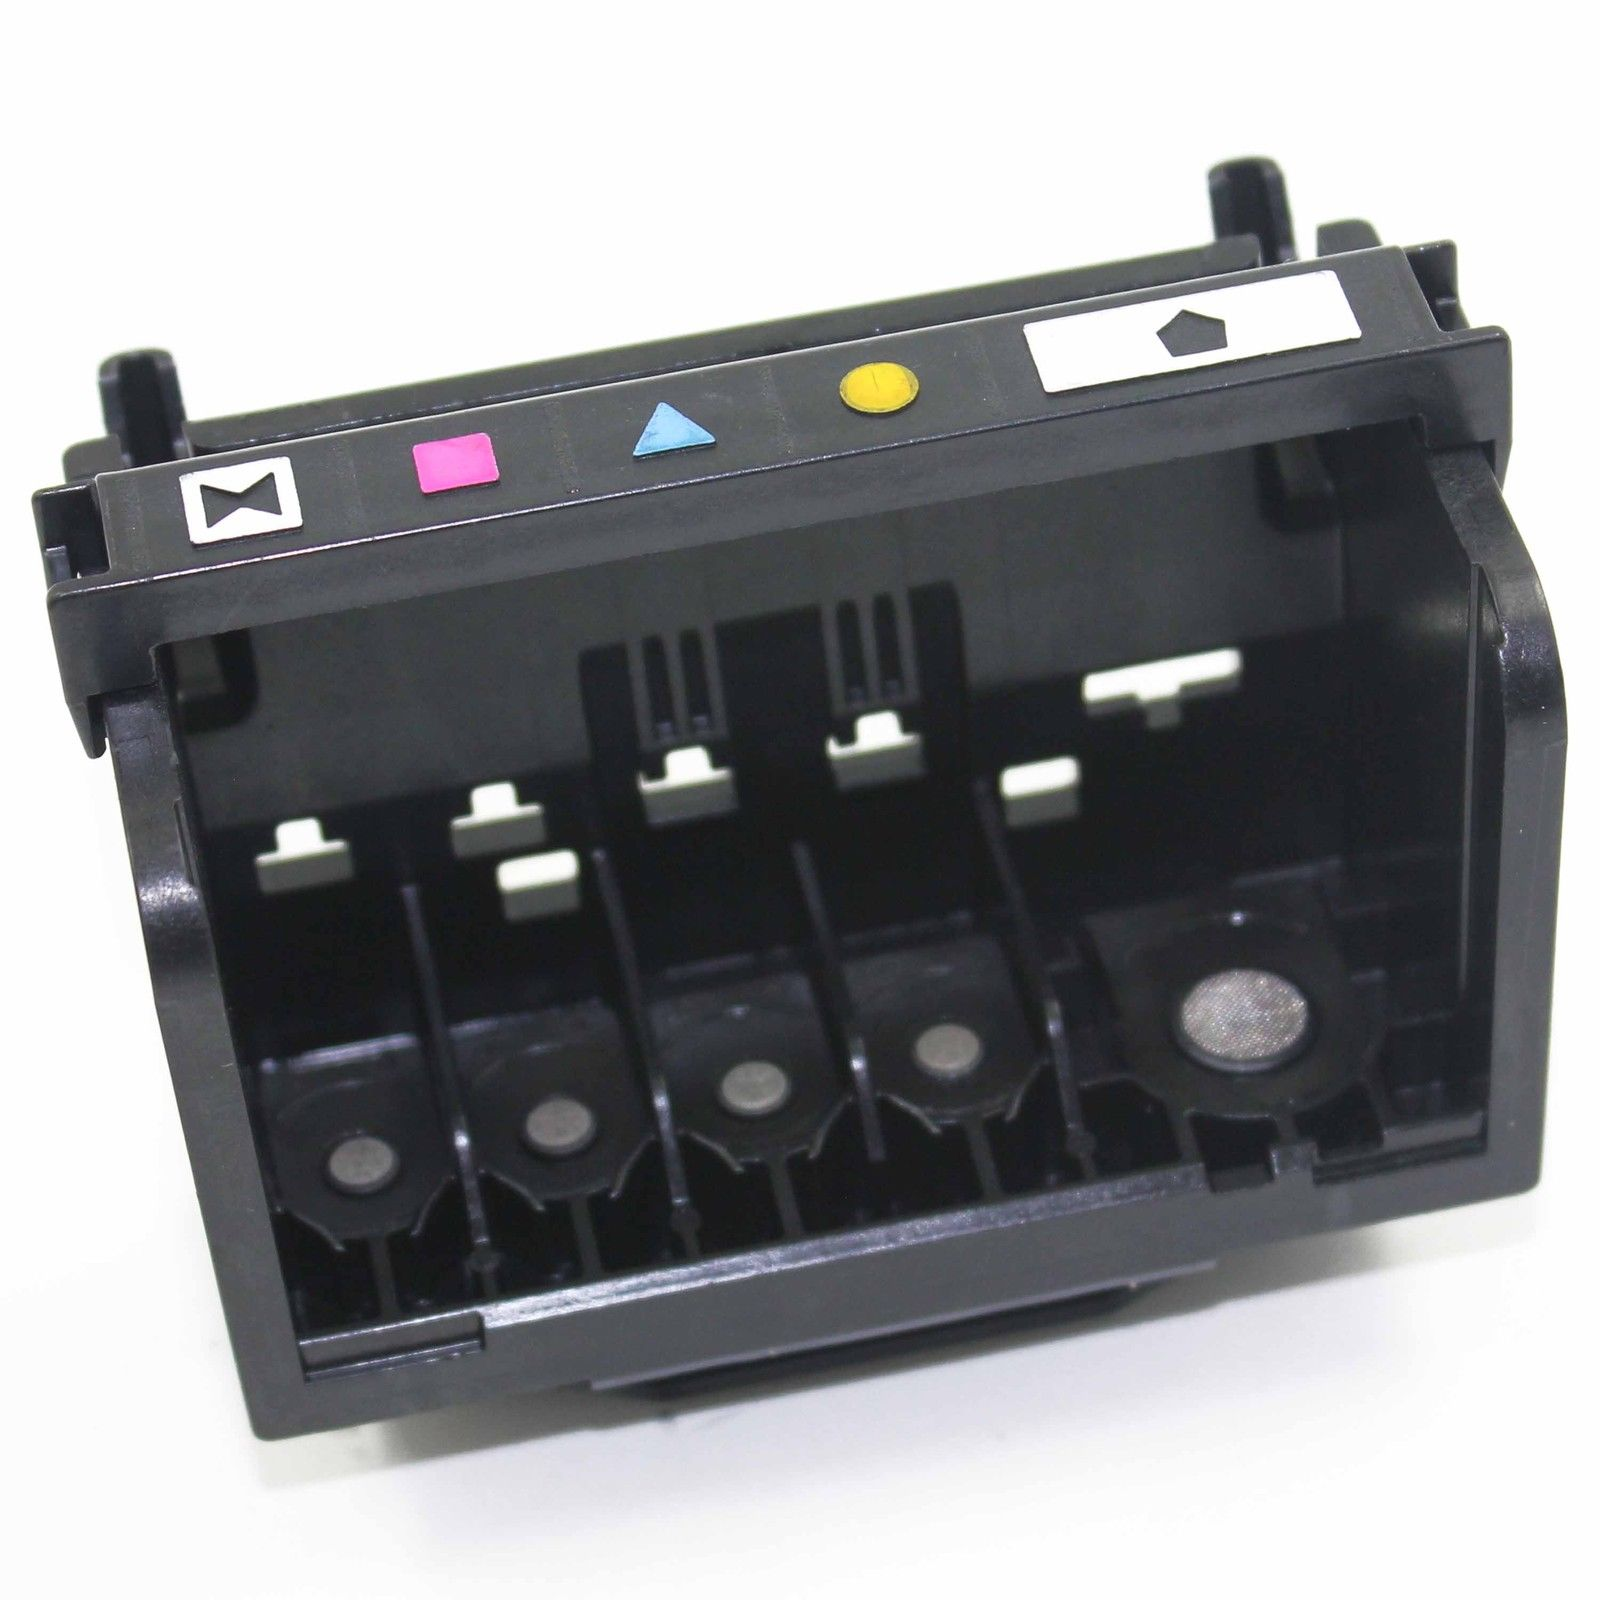 Our HP Officejet Pro 6830 Has 3 Good Color Ink Cartridges